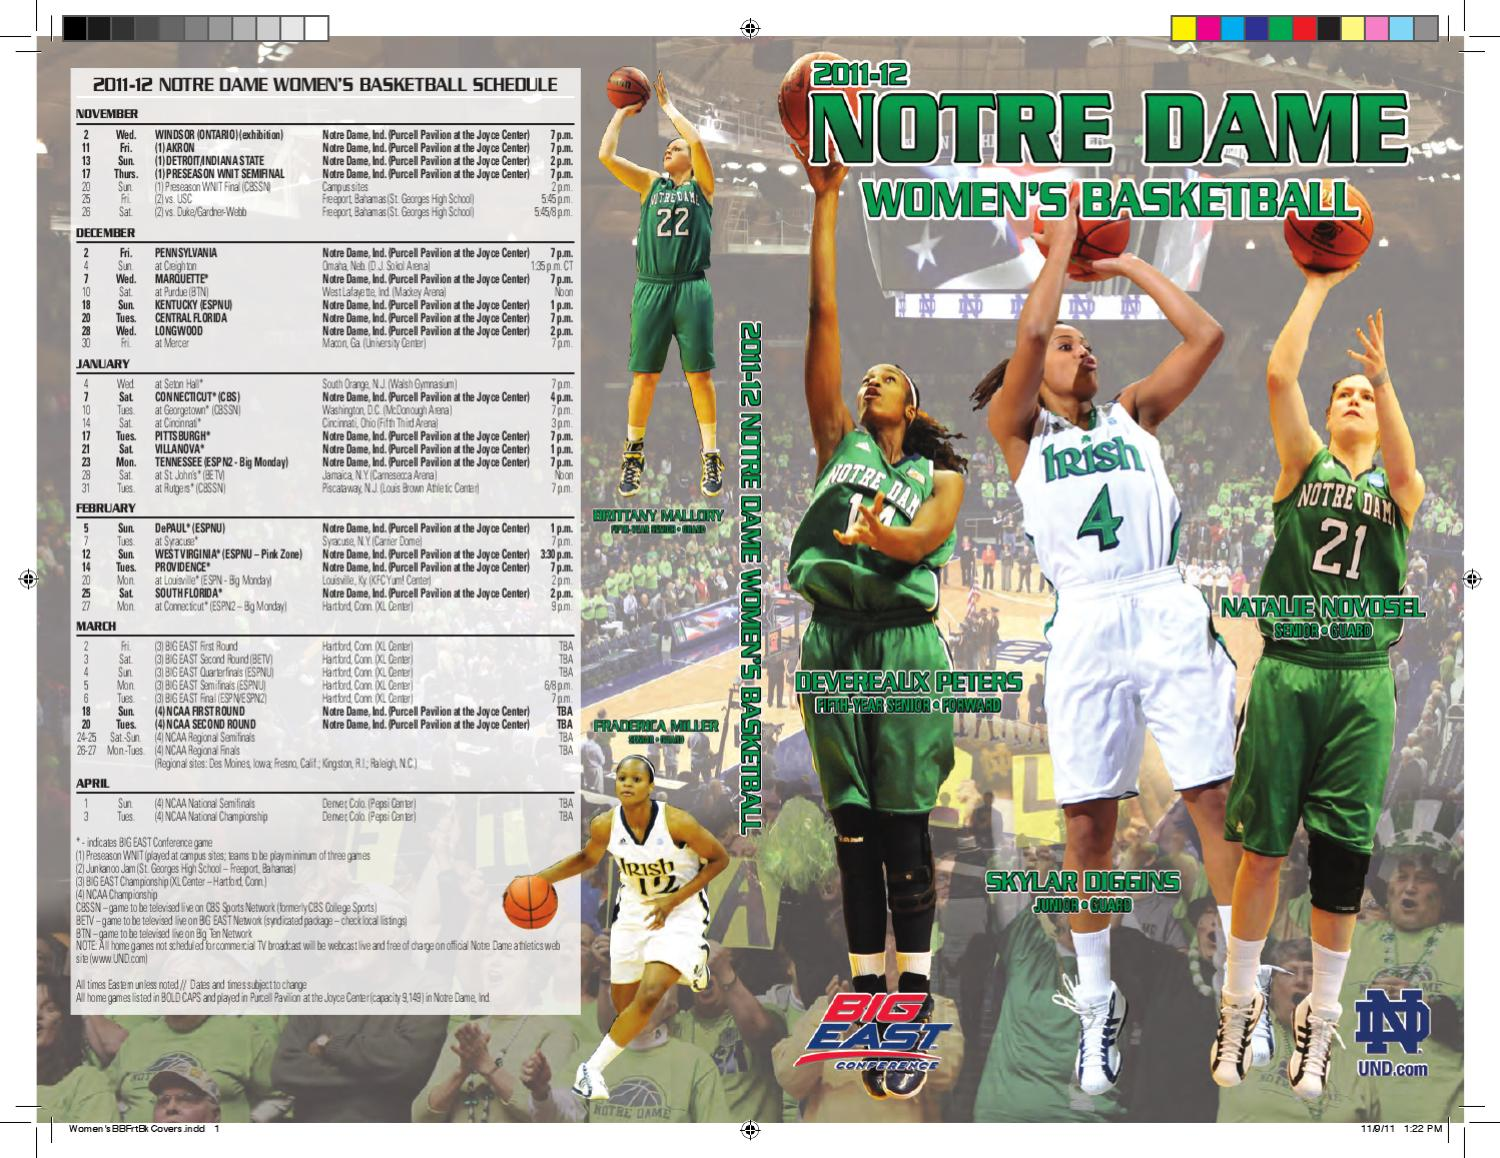 381b66570 2011-12 Notre Dame Women s Basketball Media Guide by Chris Masters - issuu